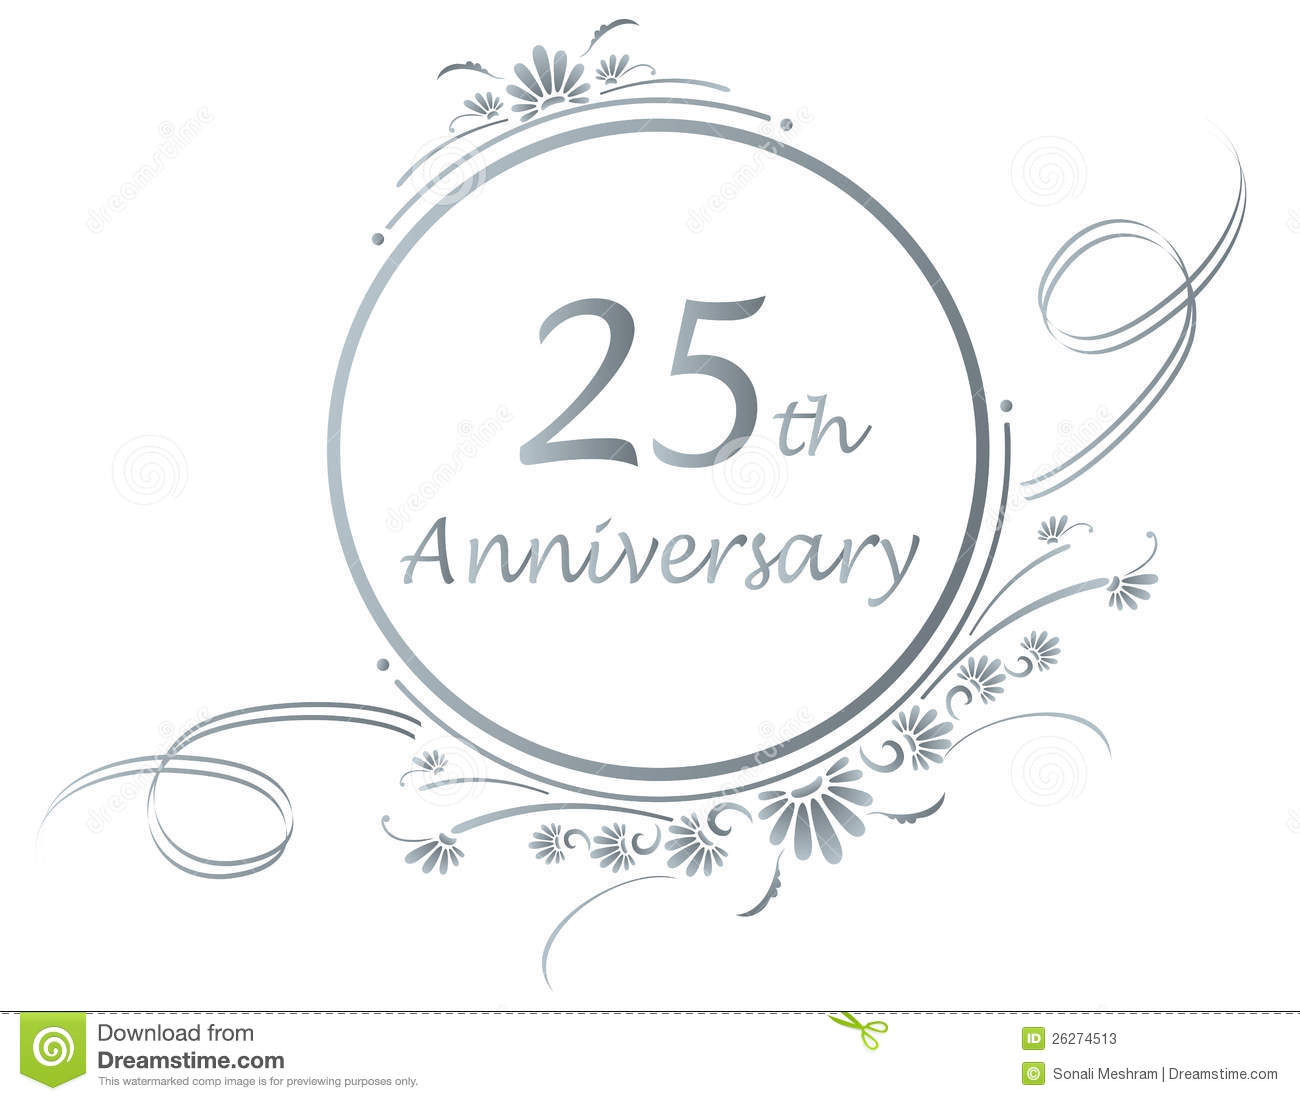 th free download. Anniversary clipart aniversary